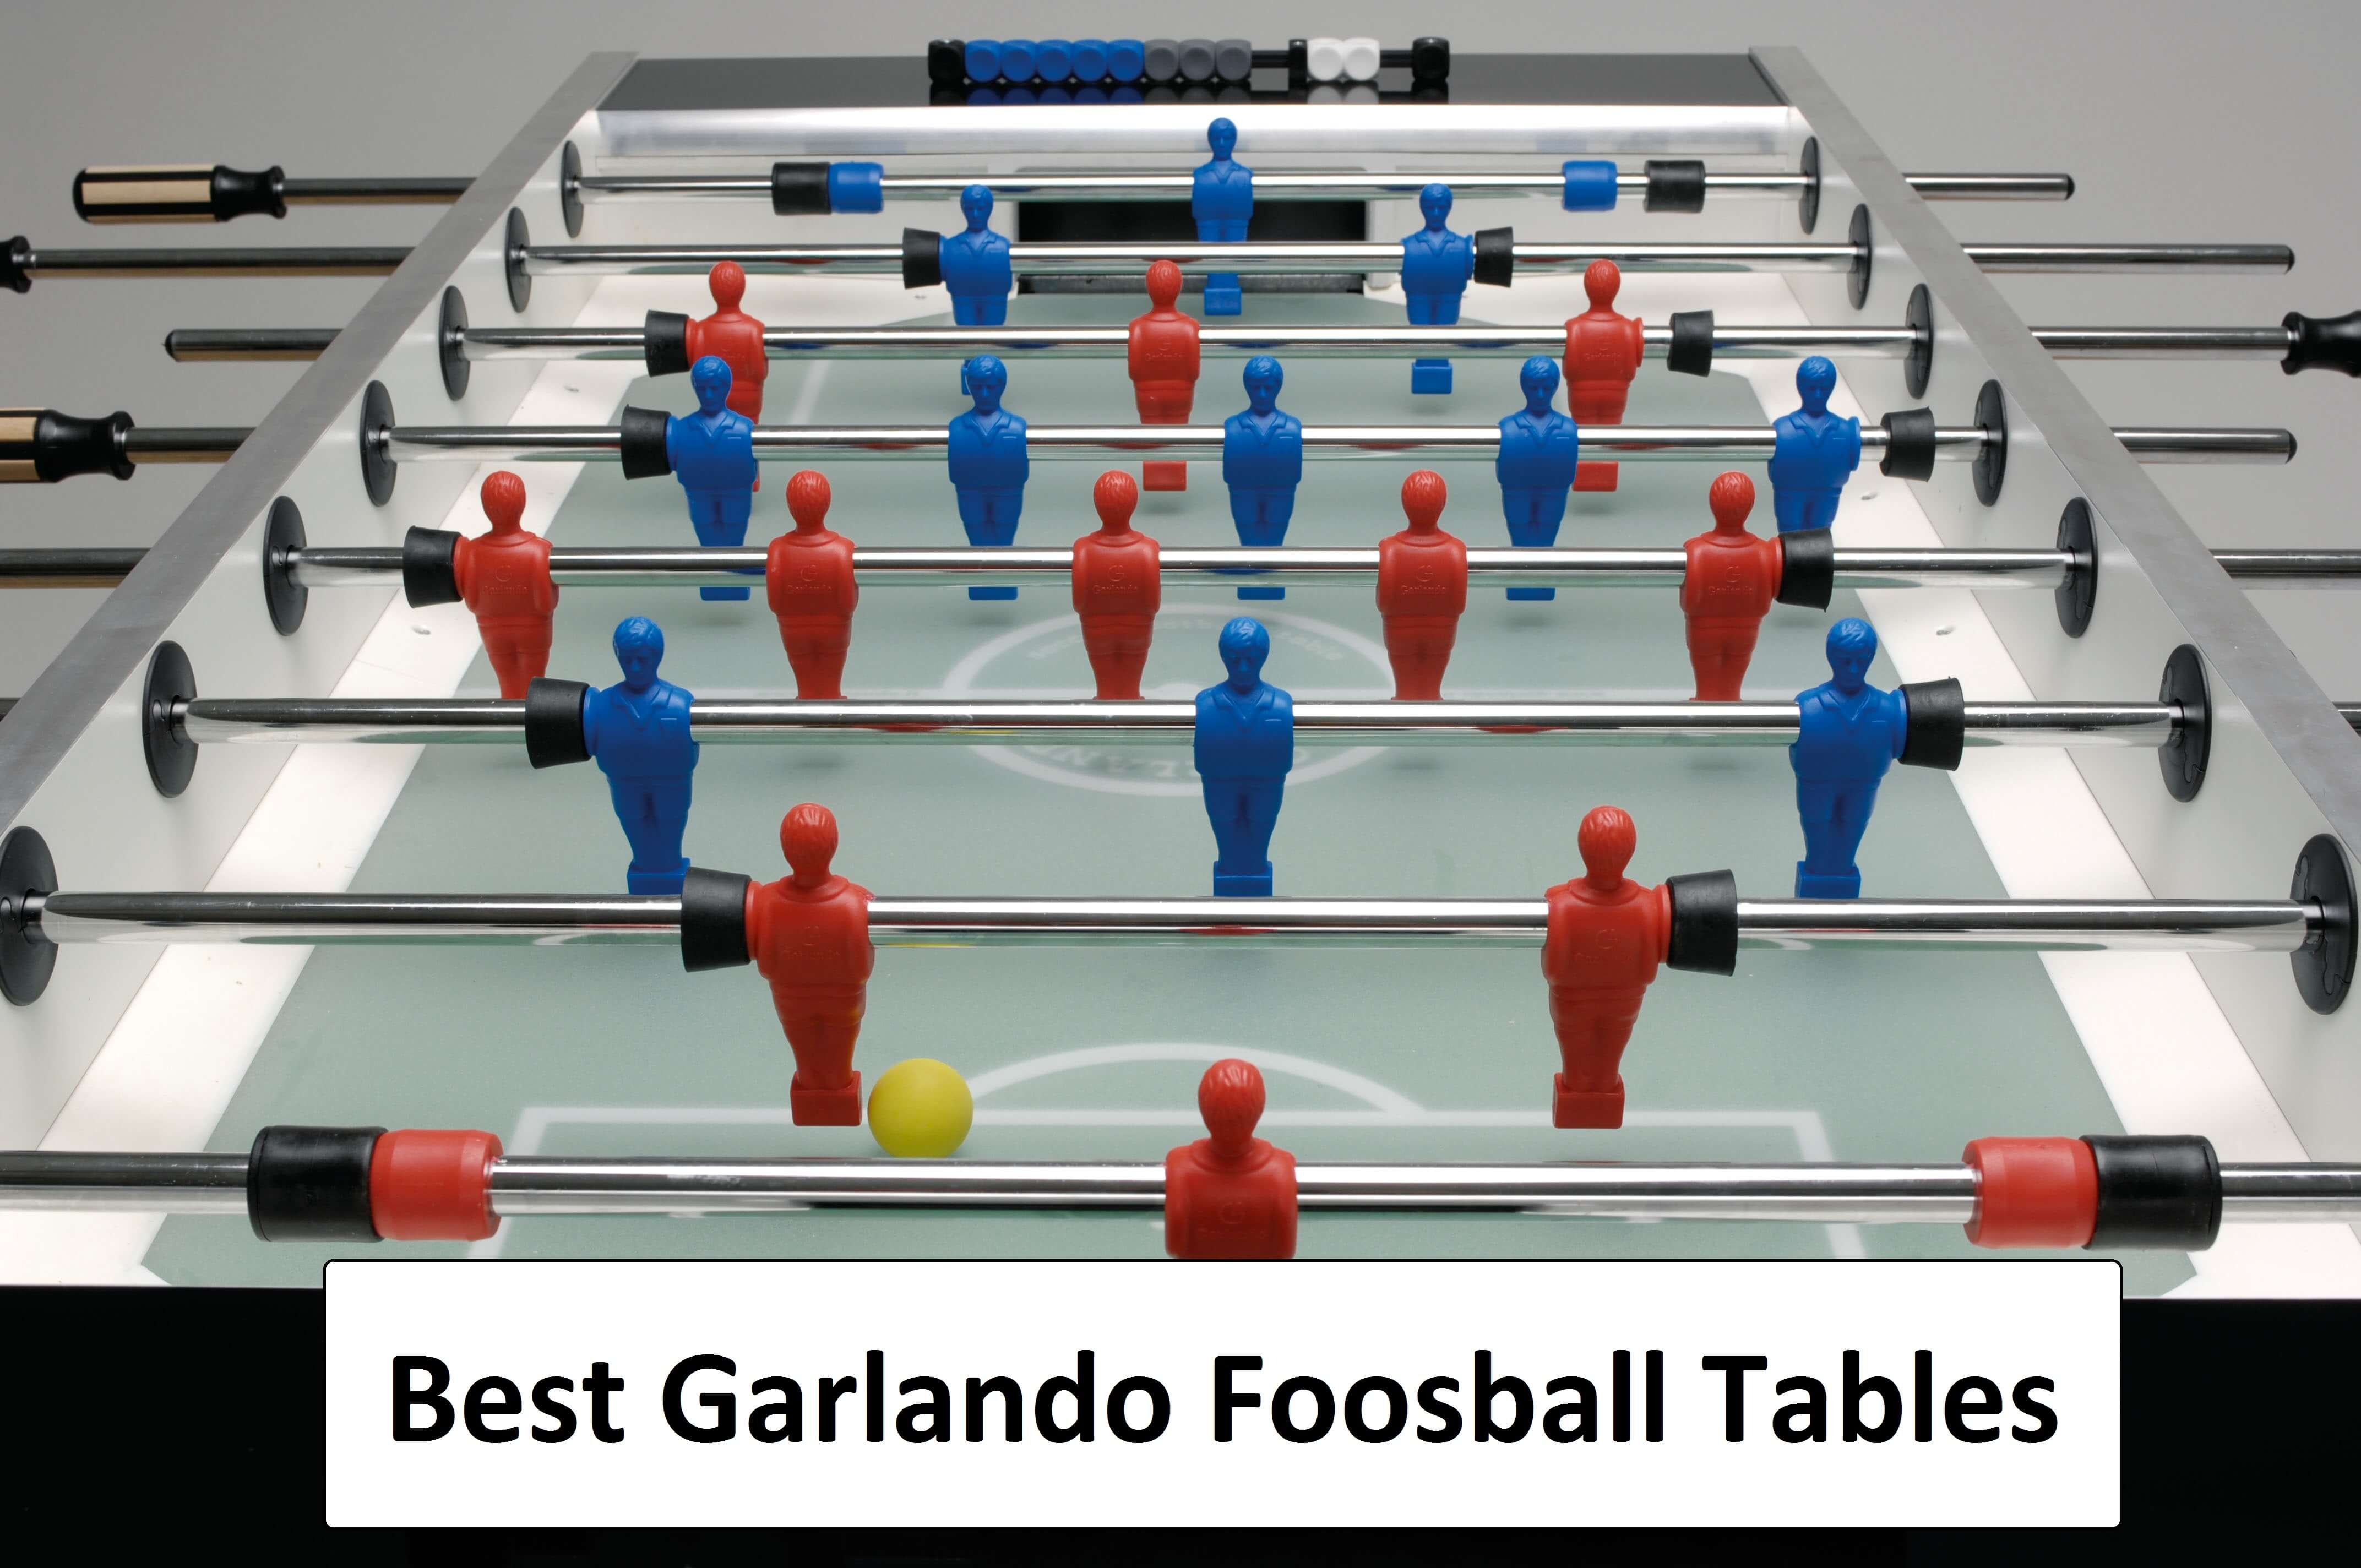 Top Garlando Foosball Table Find Out Which Is Best